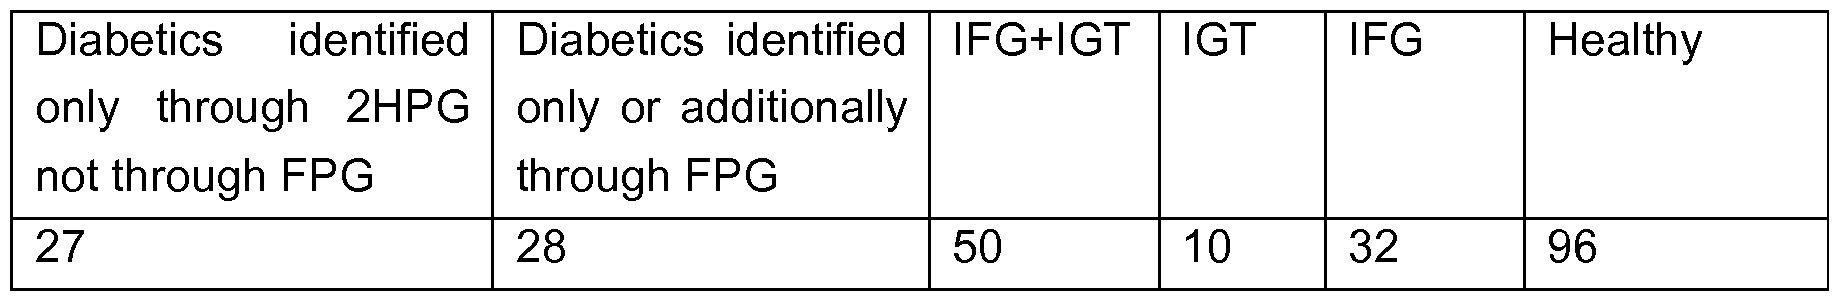 igt diabetes ifg